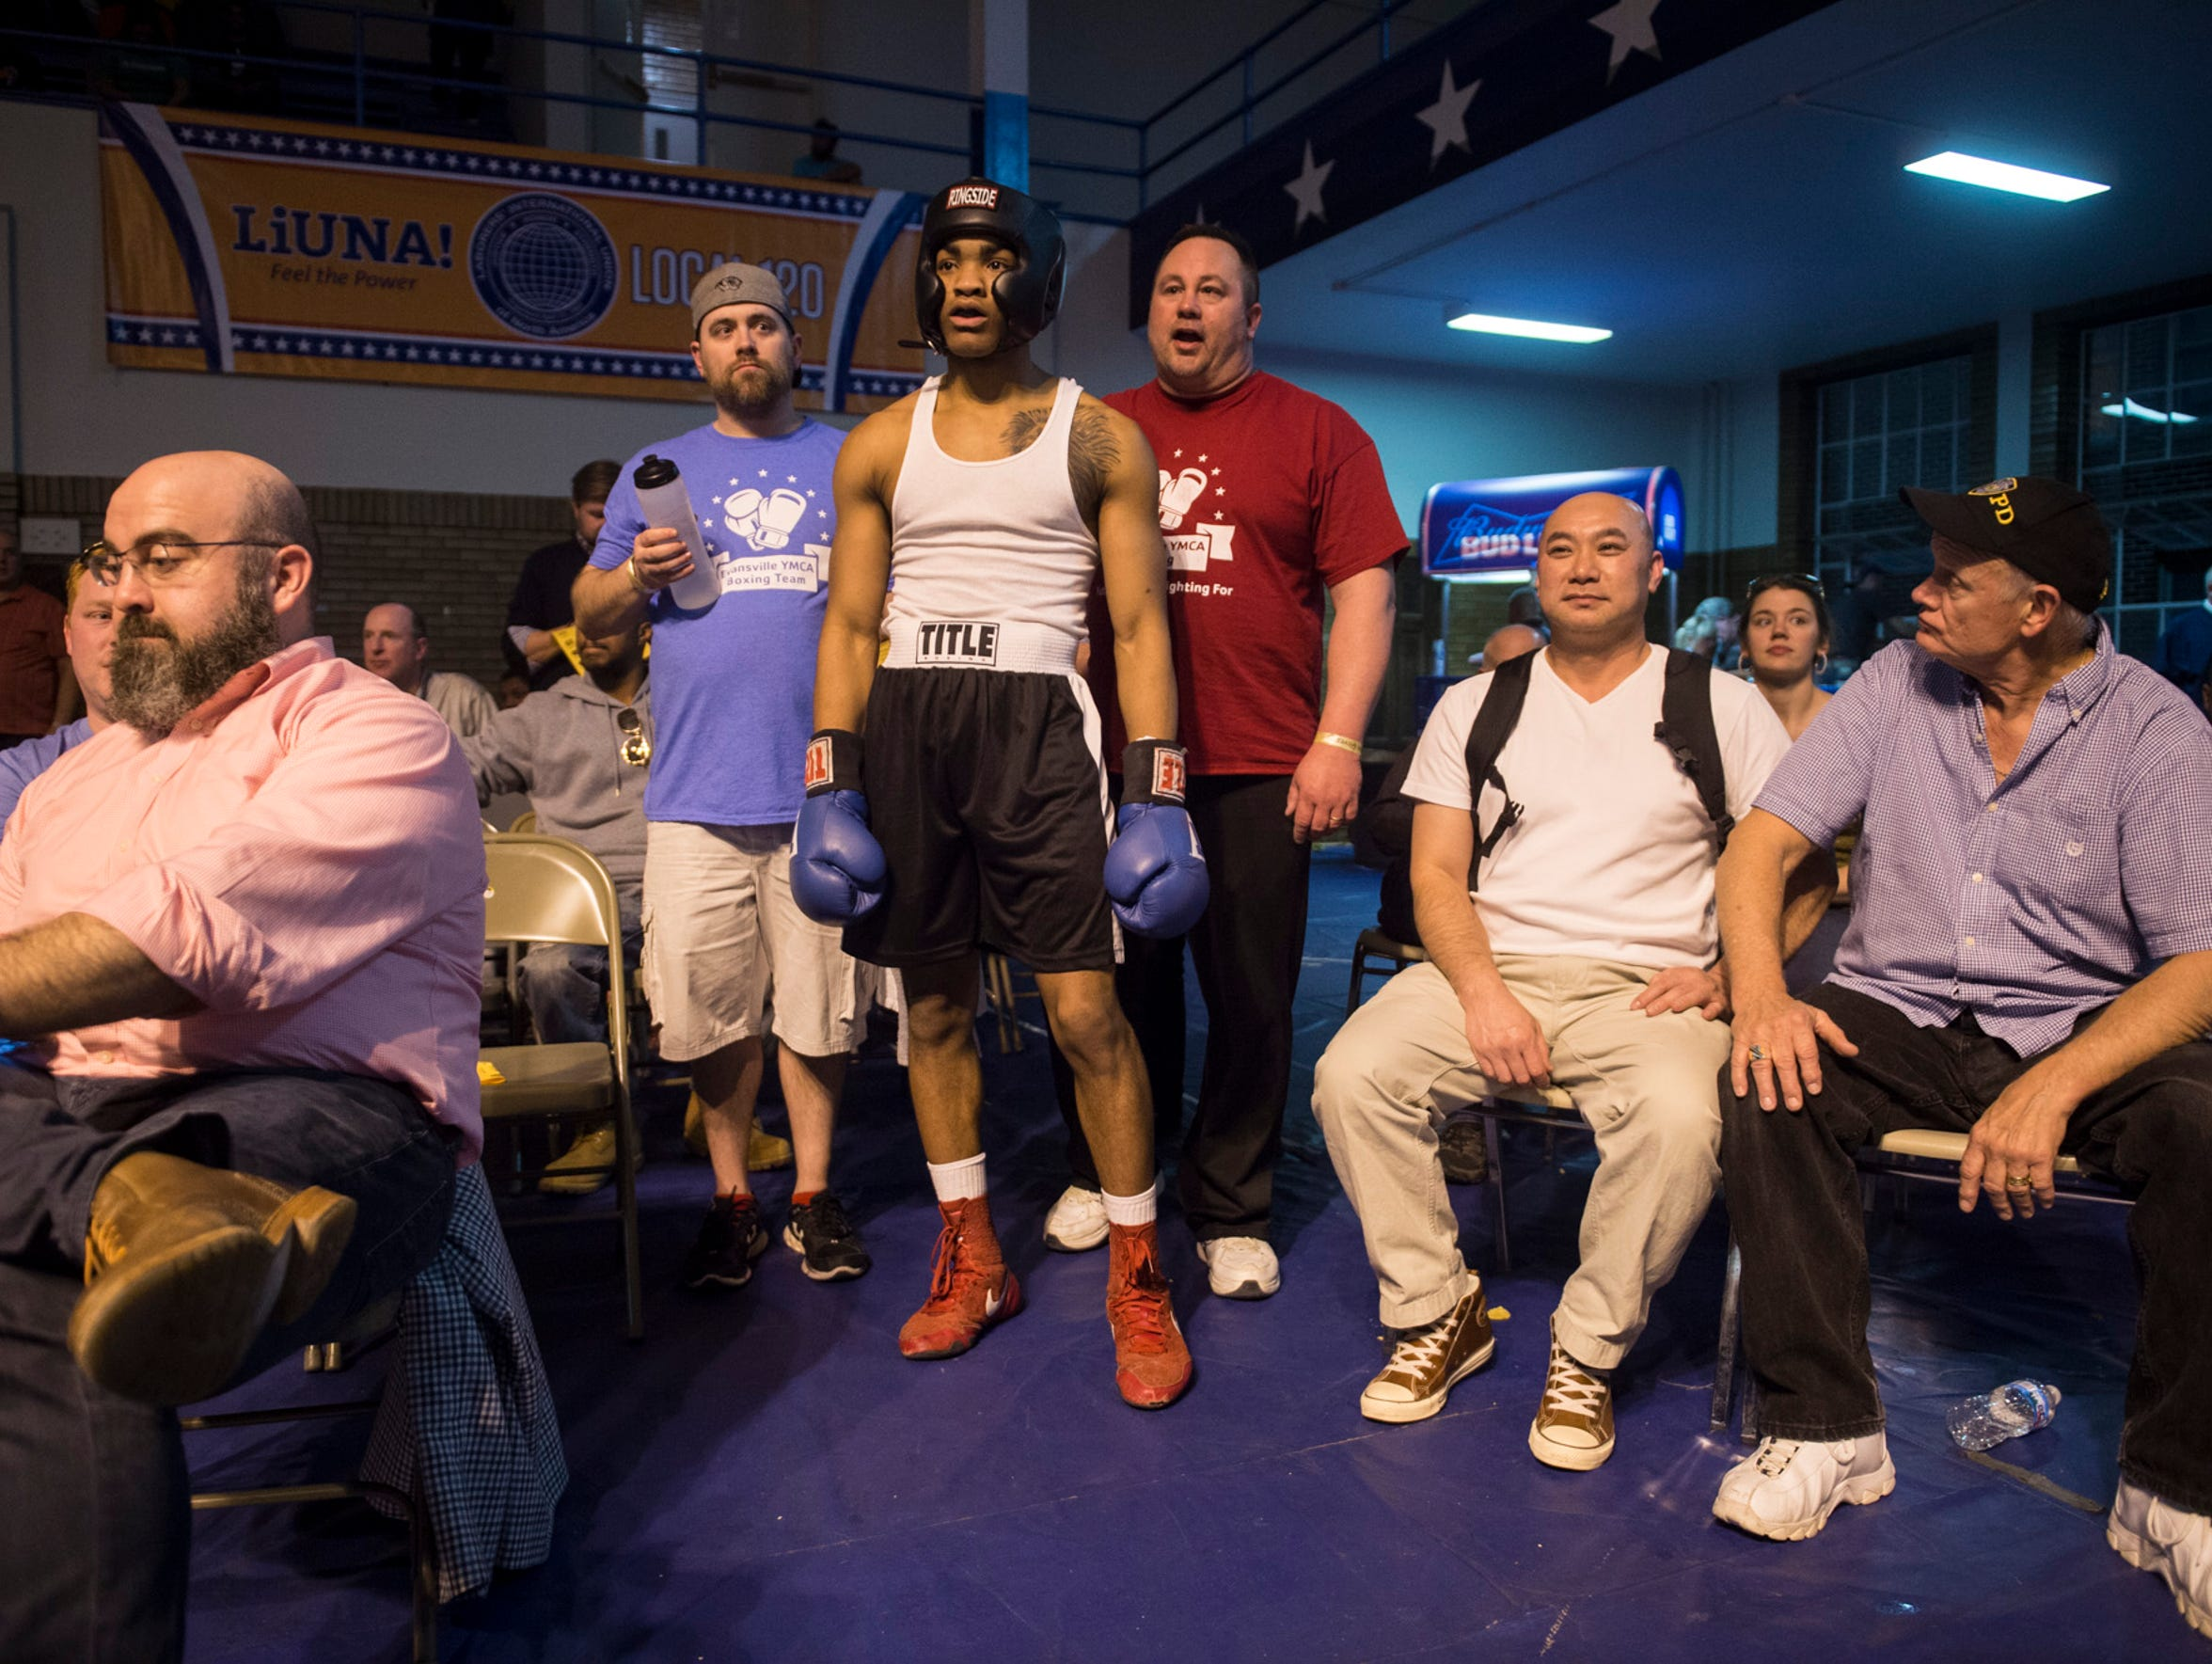 Raymon Henry, middle, stands just outside the ring